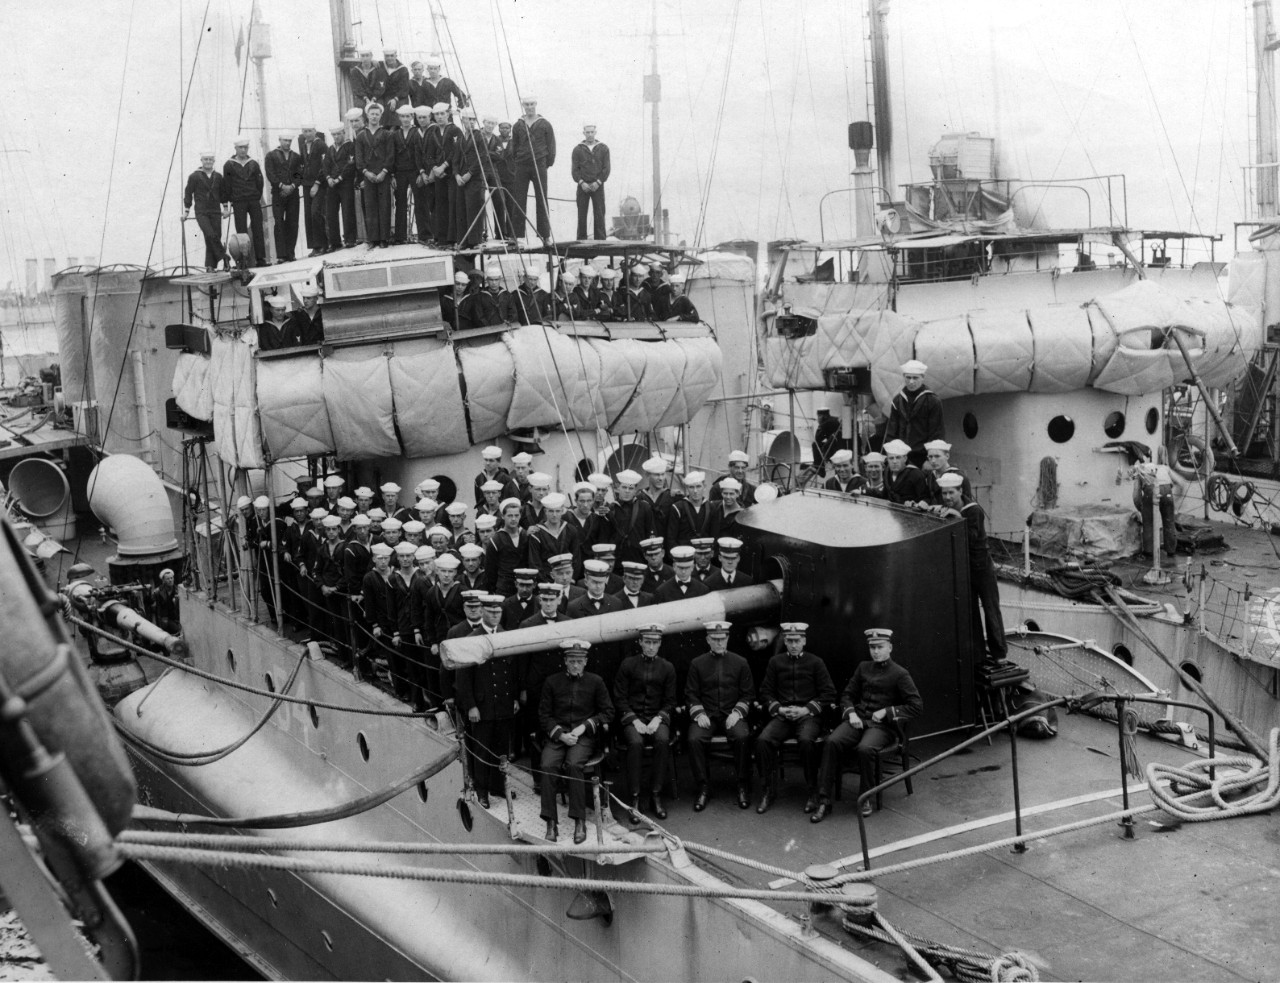 McDougal's ship's company arrayed for a group photograph, officers in the foreground, with chief petty officers immediately behind them. Note the shield on the forward gun and the framework to prevent the depression of the gun to fire into the forecastle, as well as the hinged pierced plate platforms to extend the working circle for the mount, the splinter mattresses hung on the forward part of the bridge (the only part of which that seems to be of solid construction is the chart desk on the starboard side), and the ship's identification number (54) painted on the hull beneath the bridge. (U.S. Navy Bureau of Ships Photograph, RG-19-E Collection, Box 7, Folder H, National Archives and Records Administration, Still Pictures Branch, College Park, Md.)